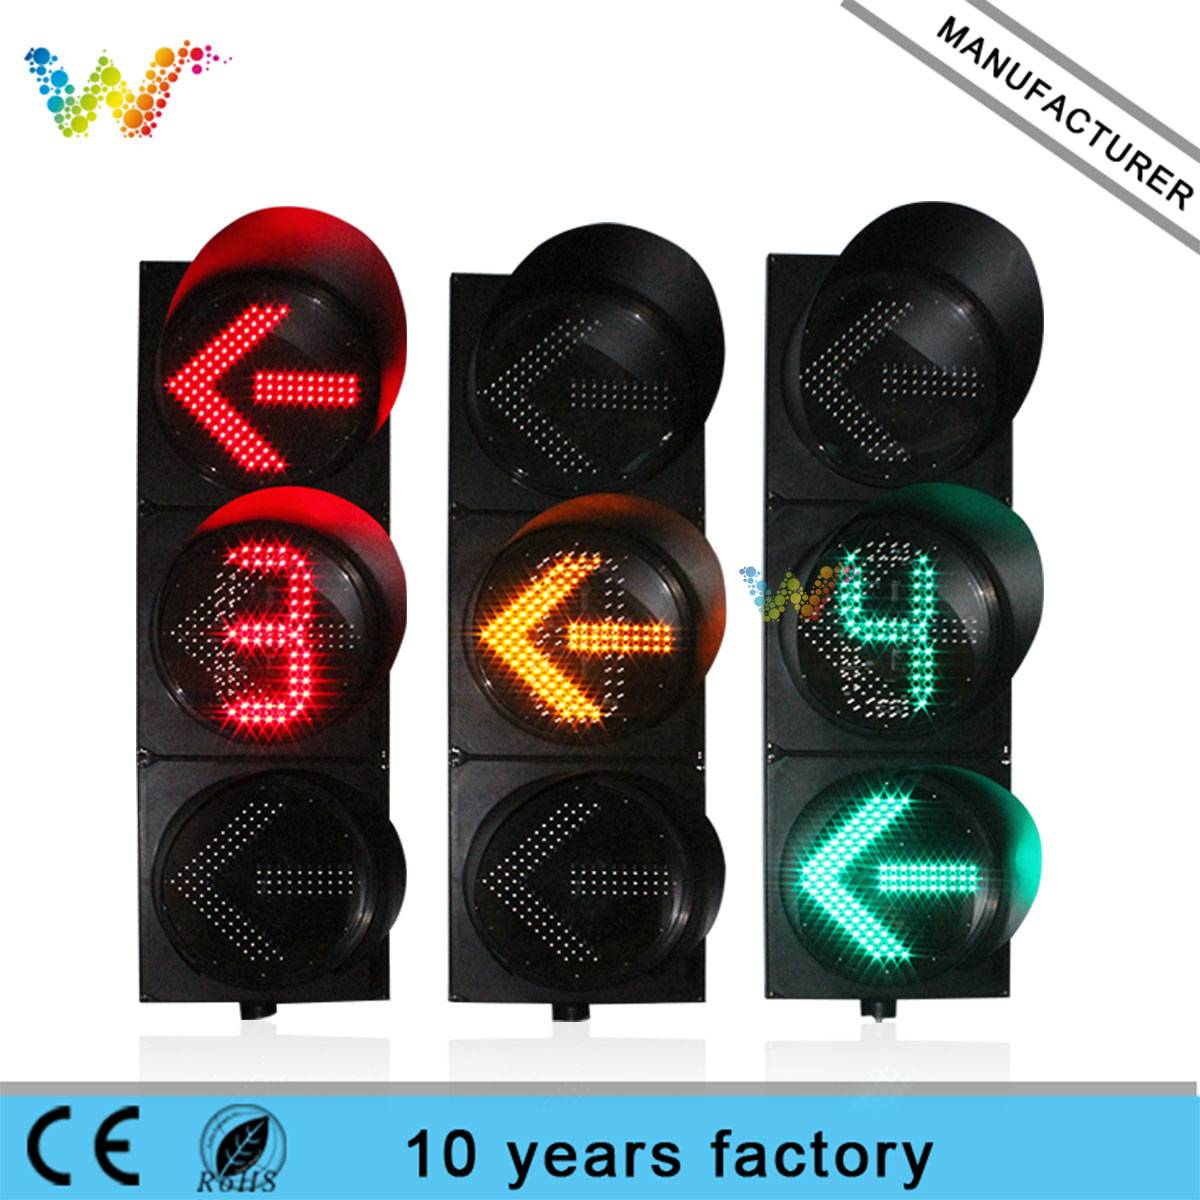 400MM direction countdown timer led traffic lights